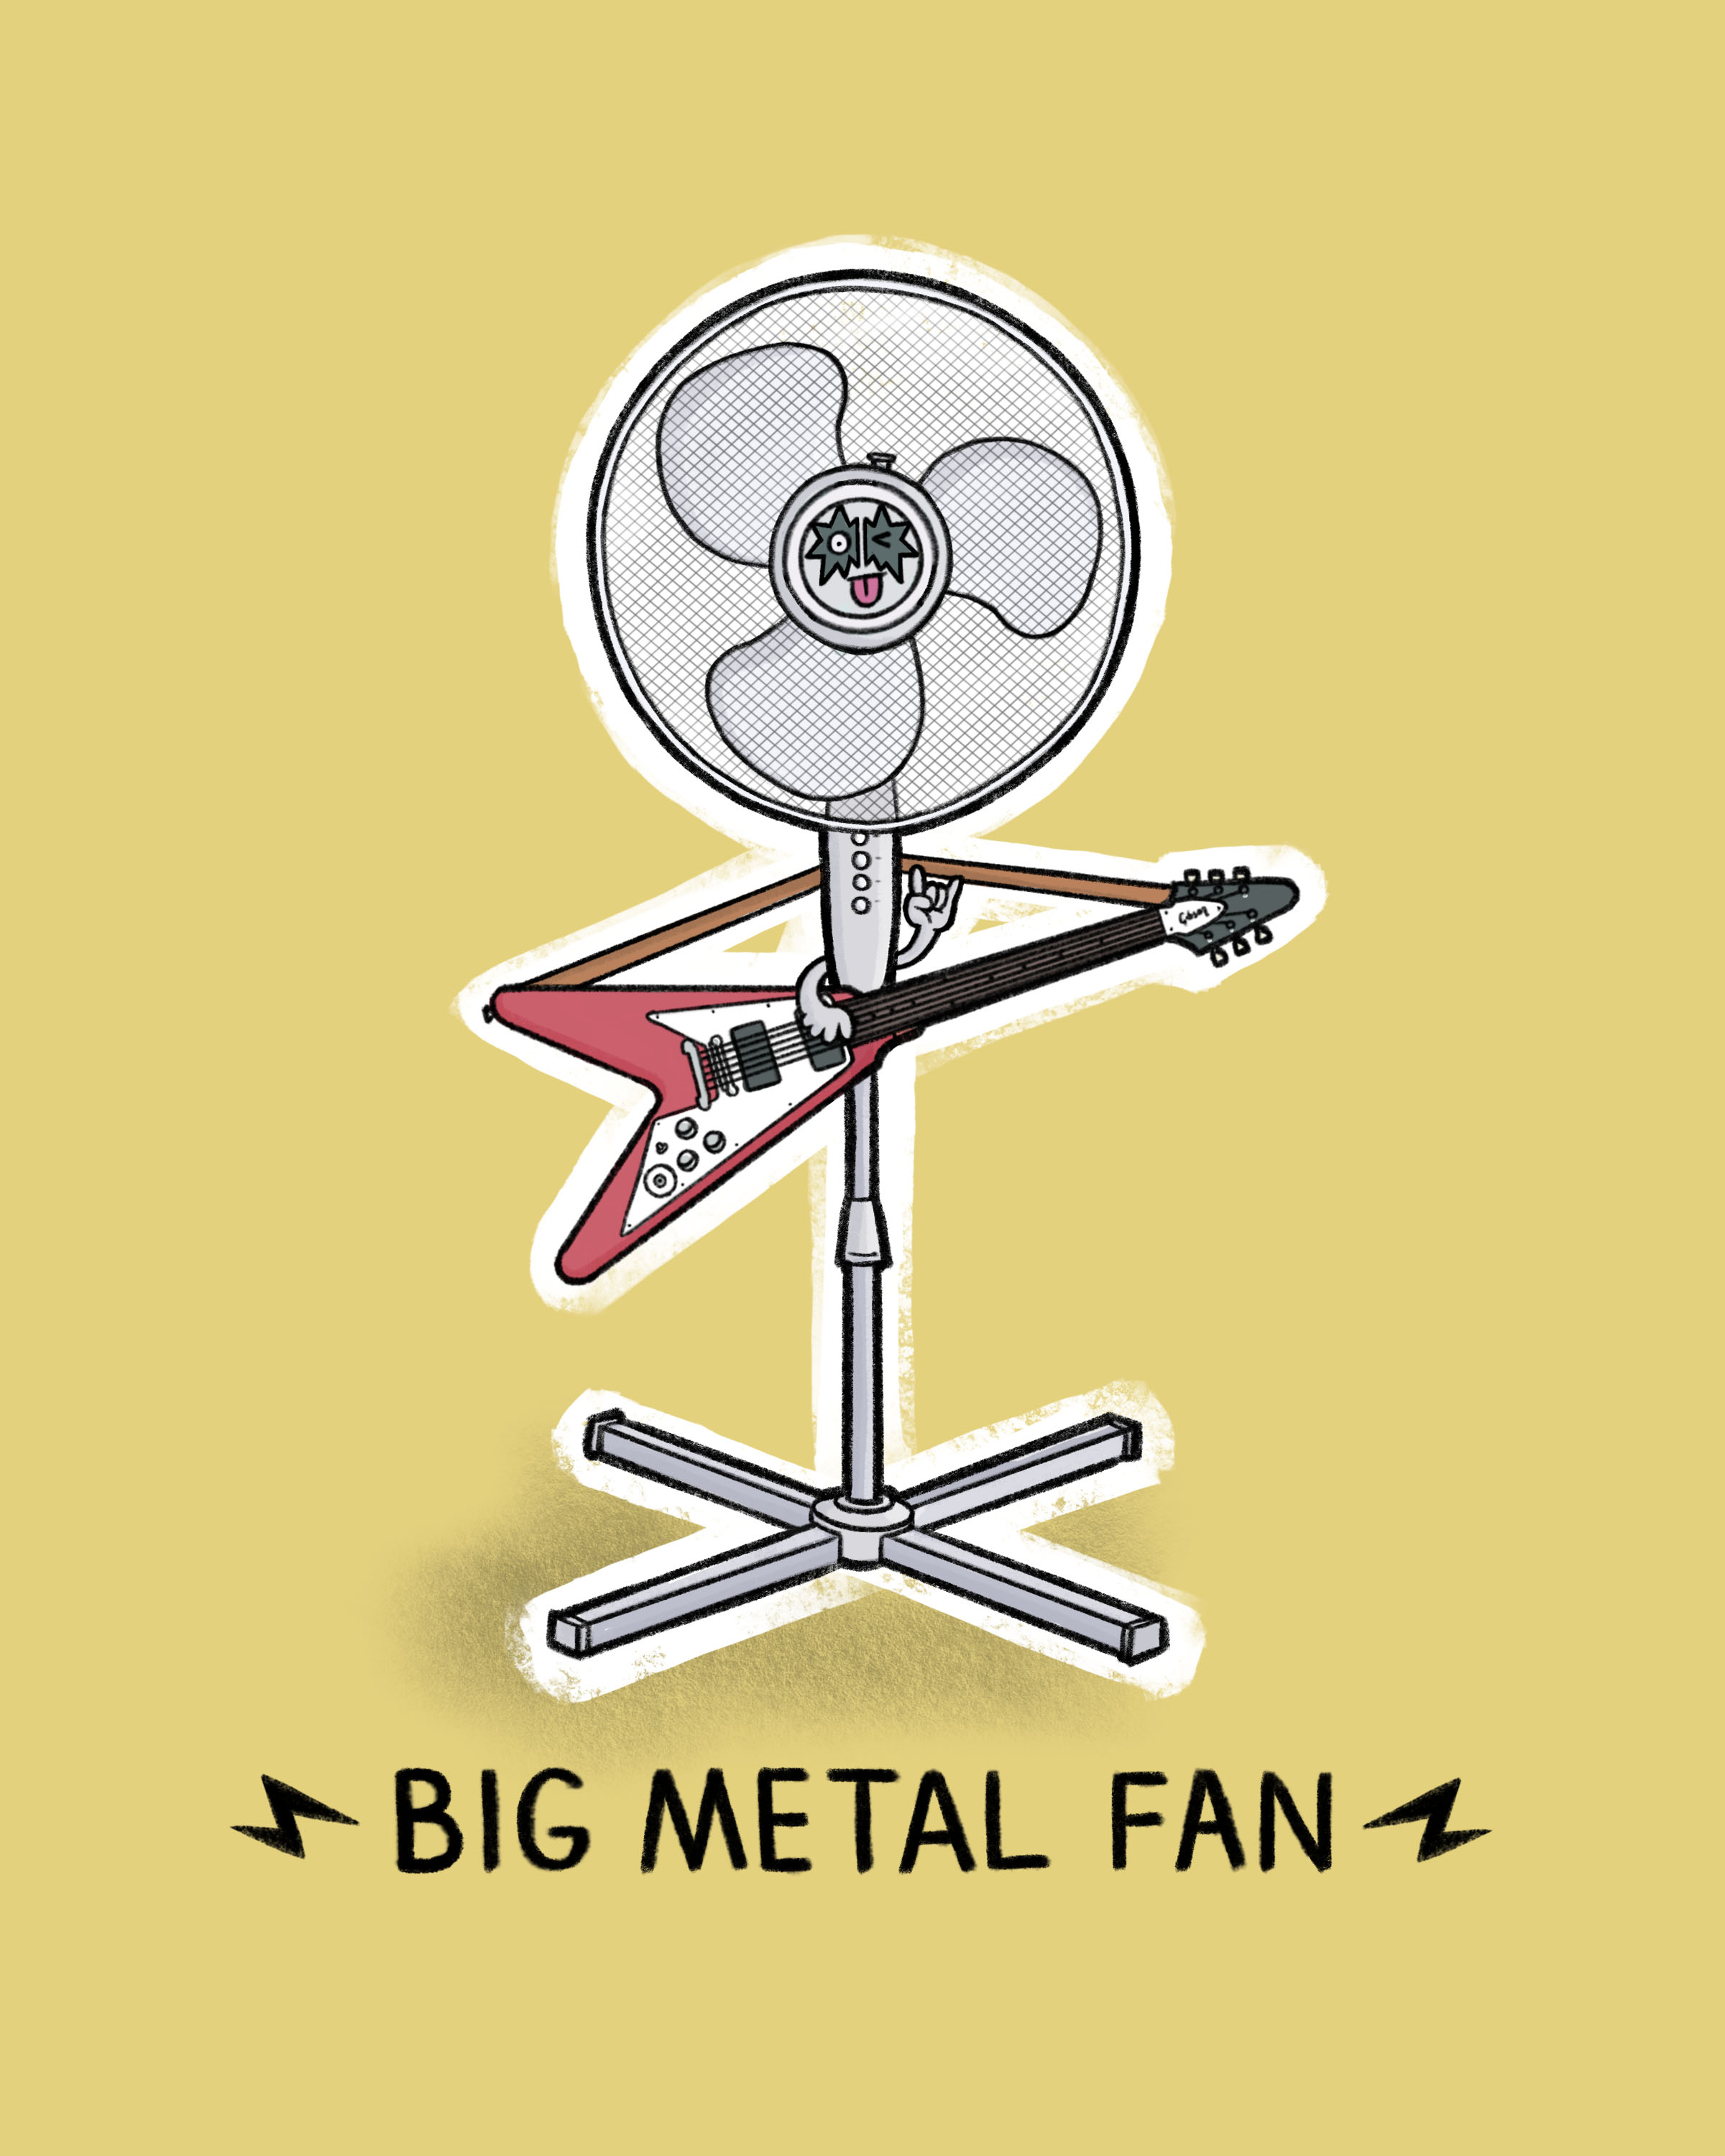 Big Metal Fan